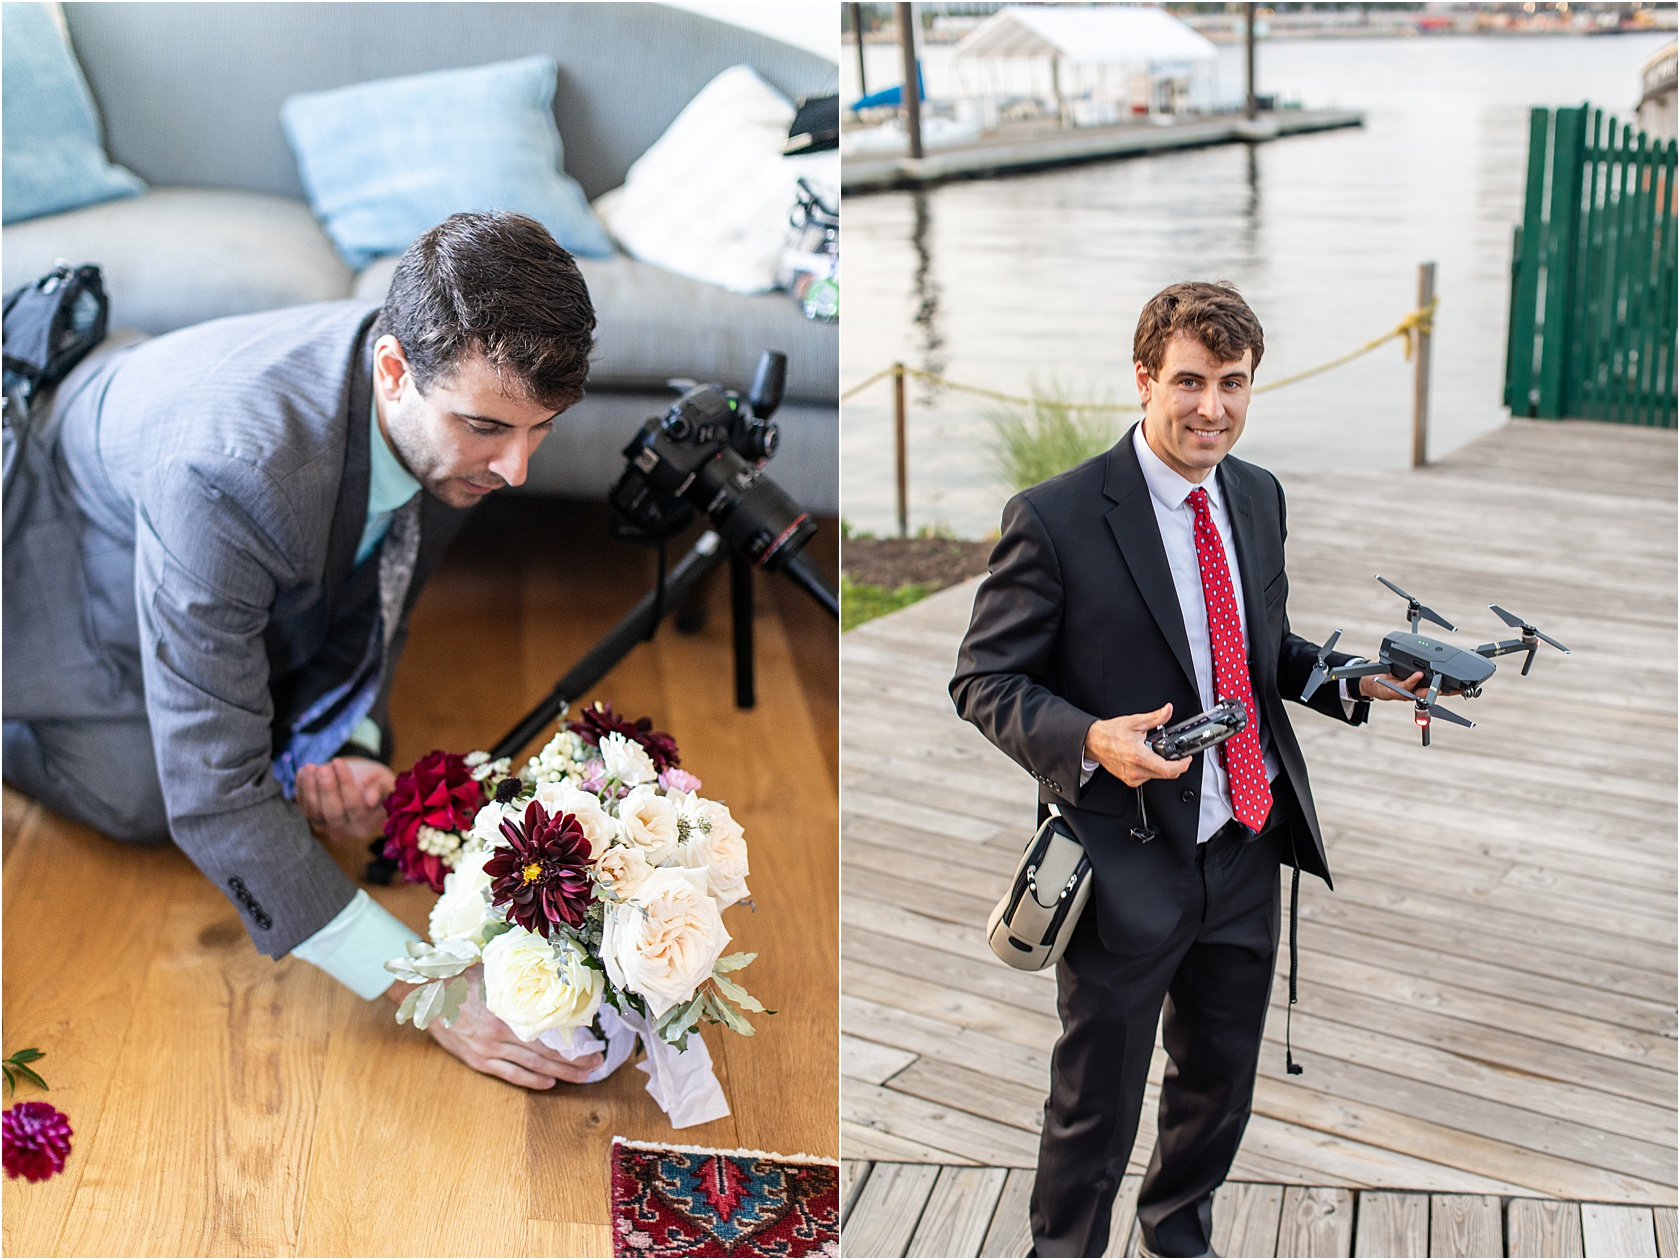 From Drones to Florals, he does it all.